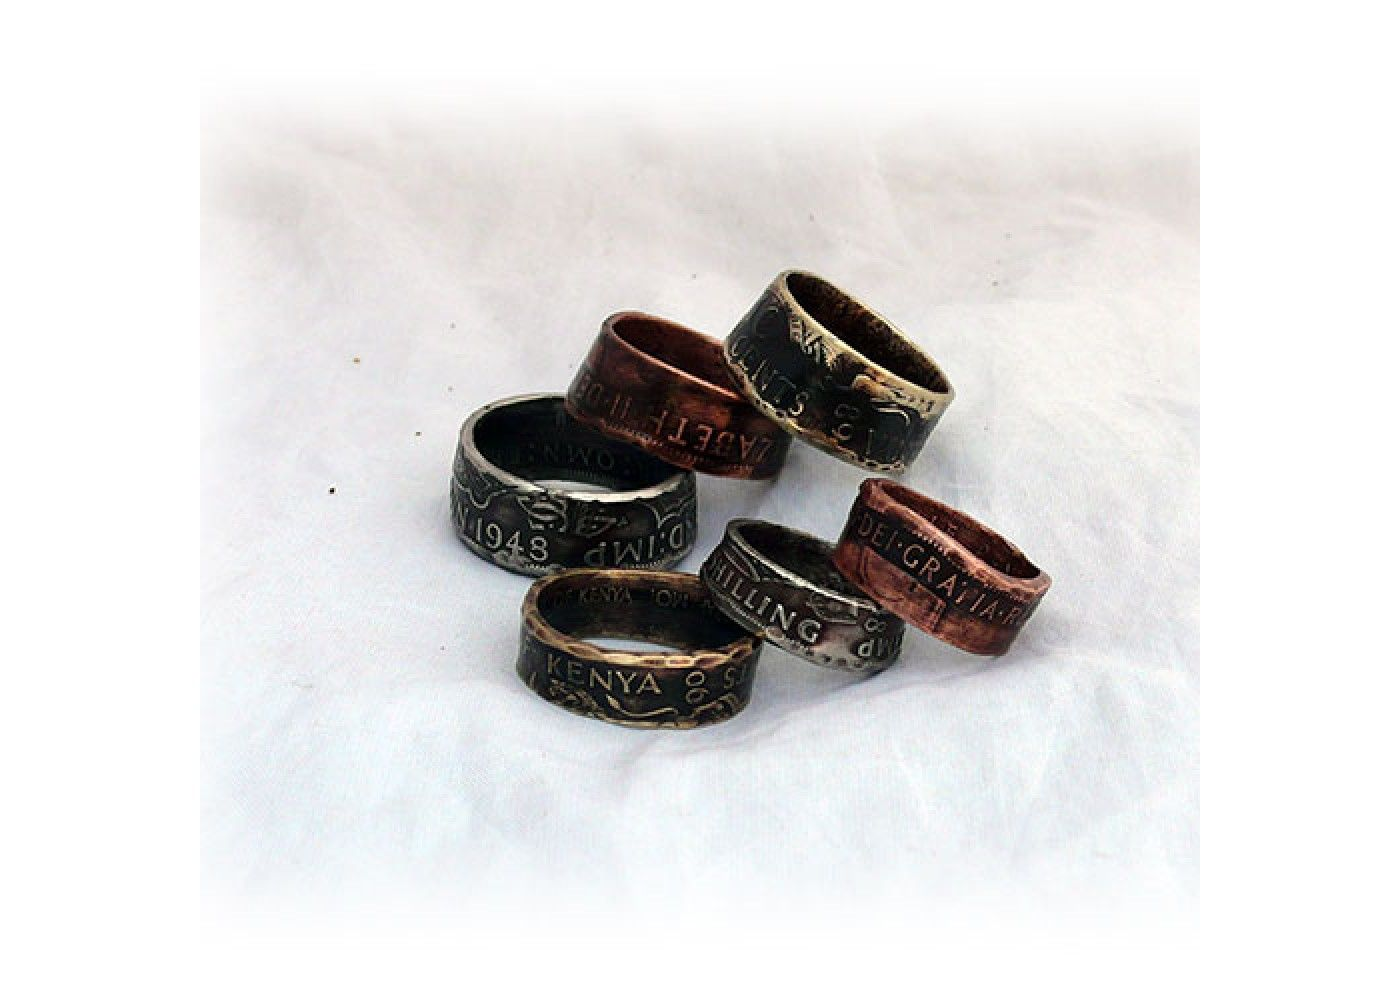 Handmade and recycled coin rings